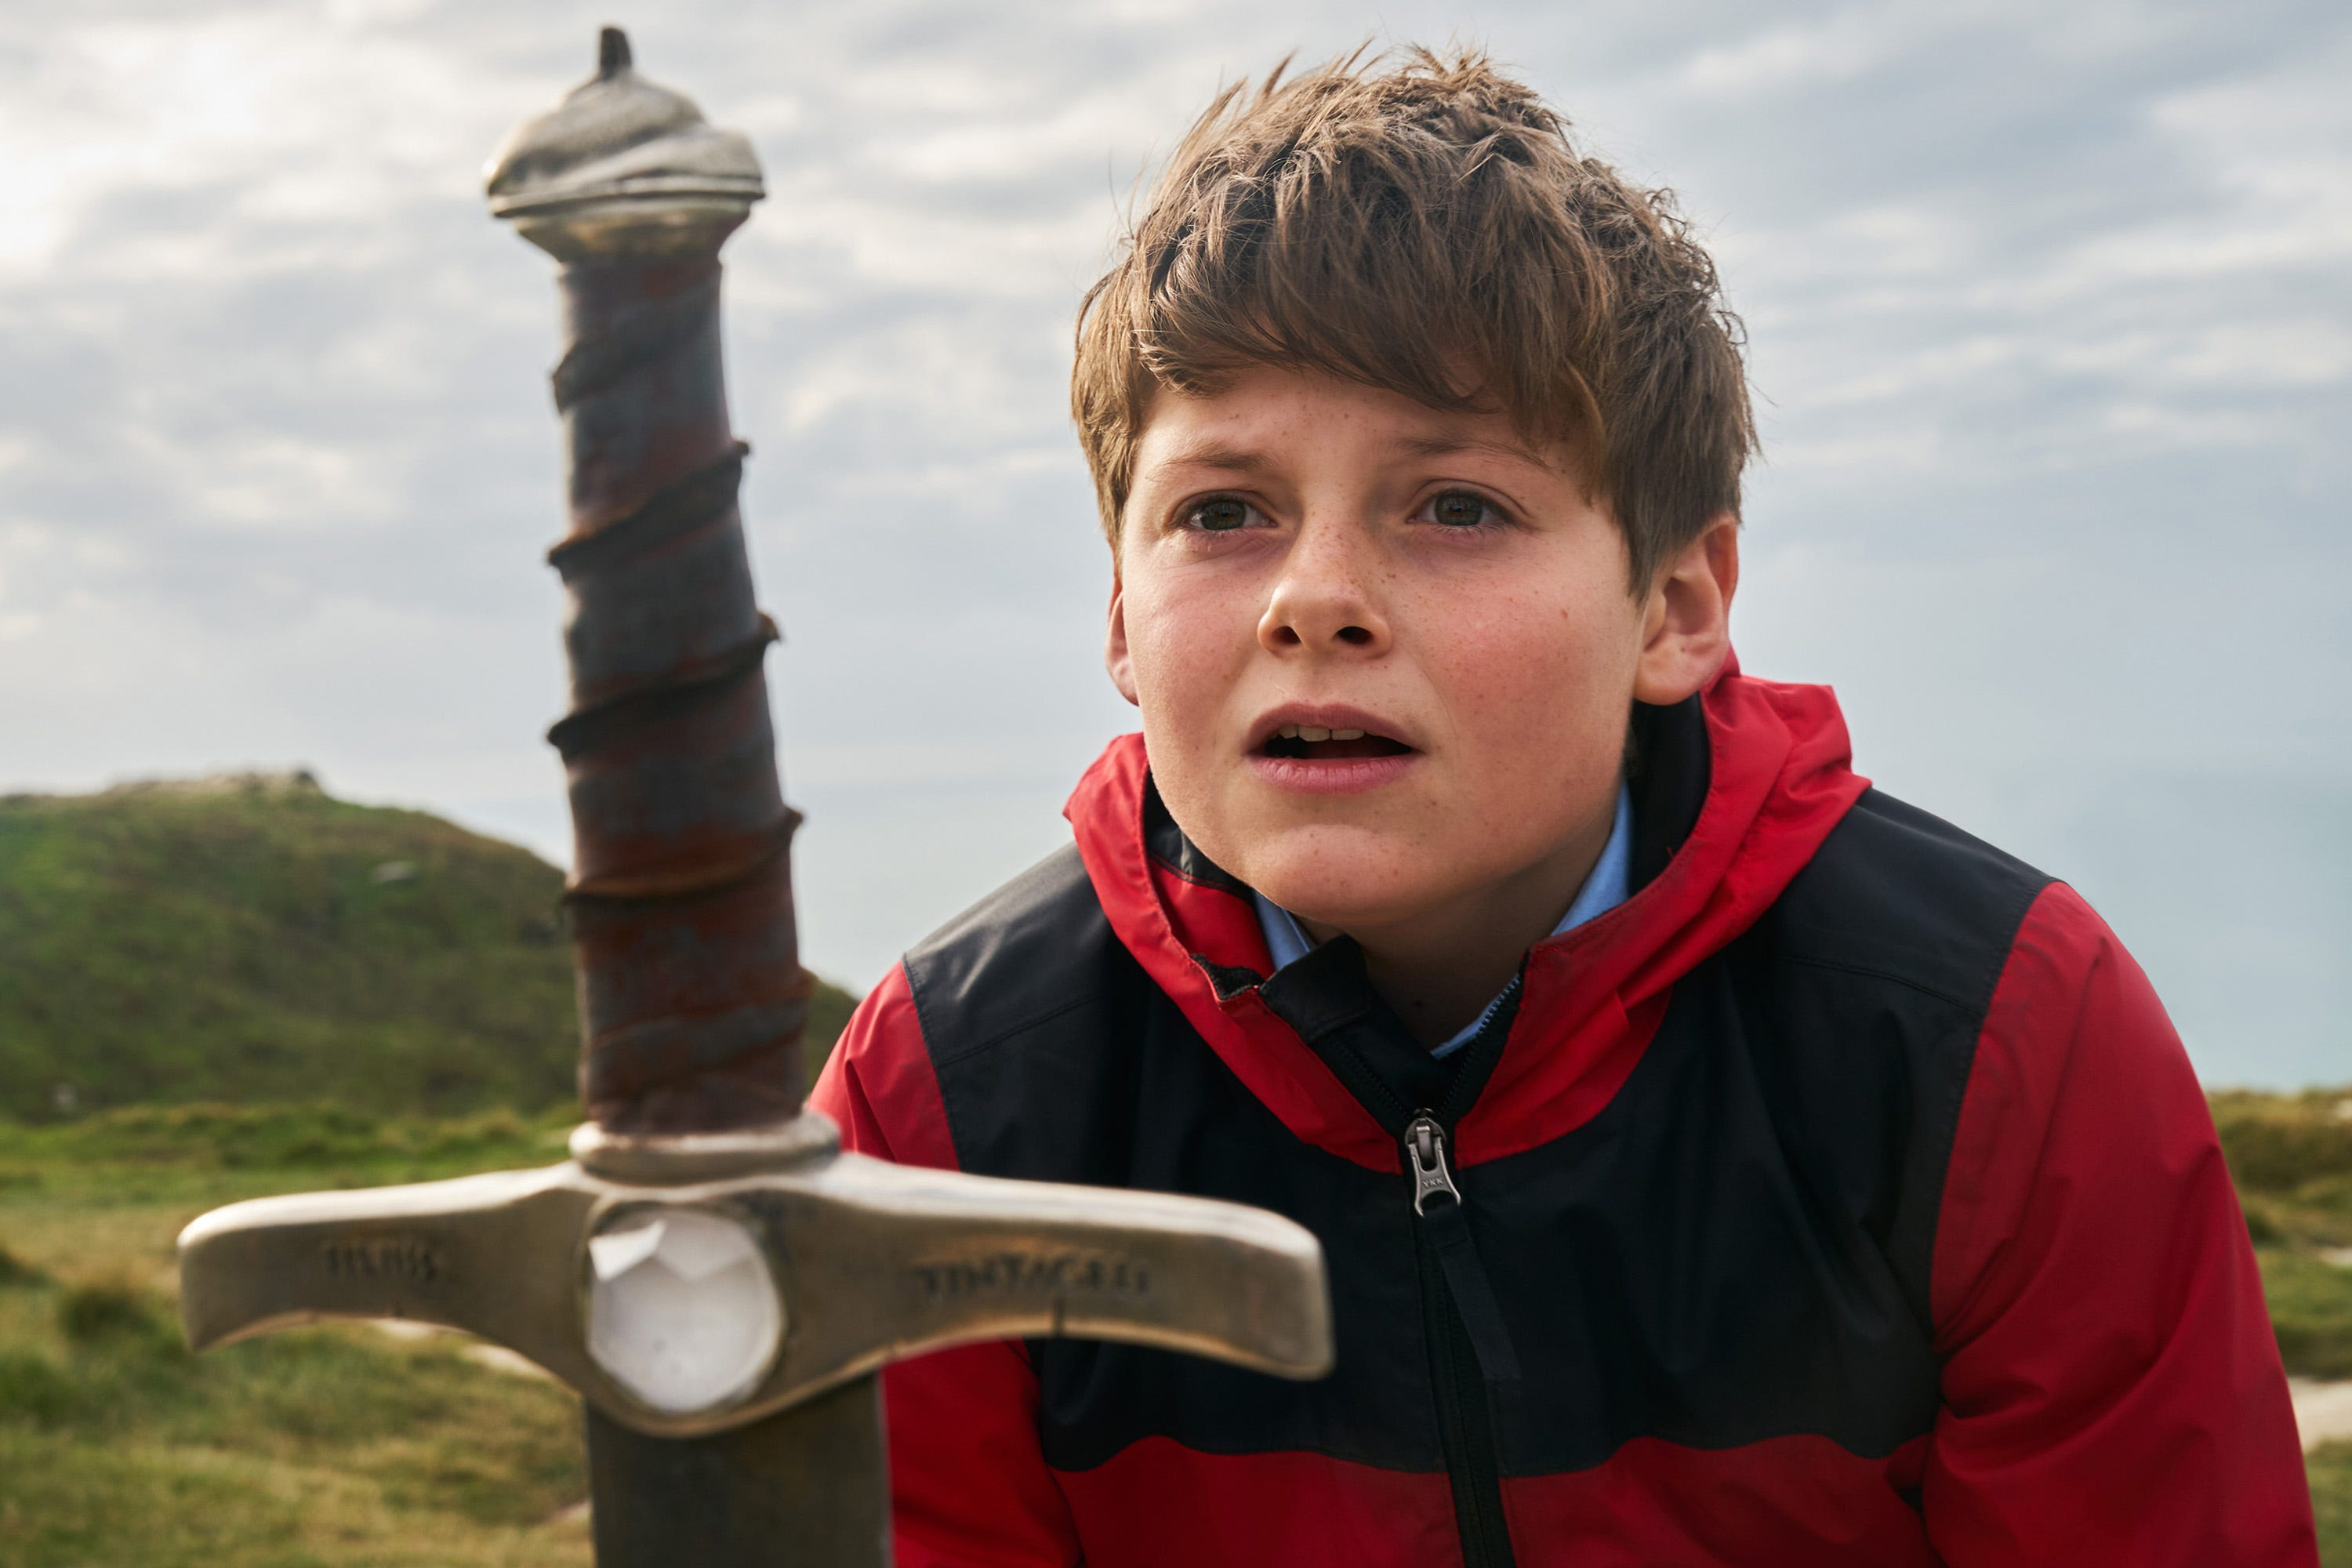 Review: Family-friendly 'The Kid Who Would Be King' revitalizes a familiar legend